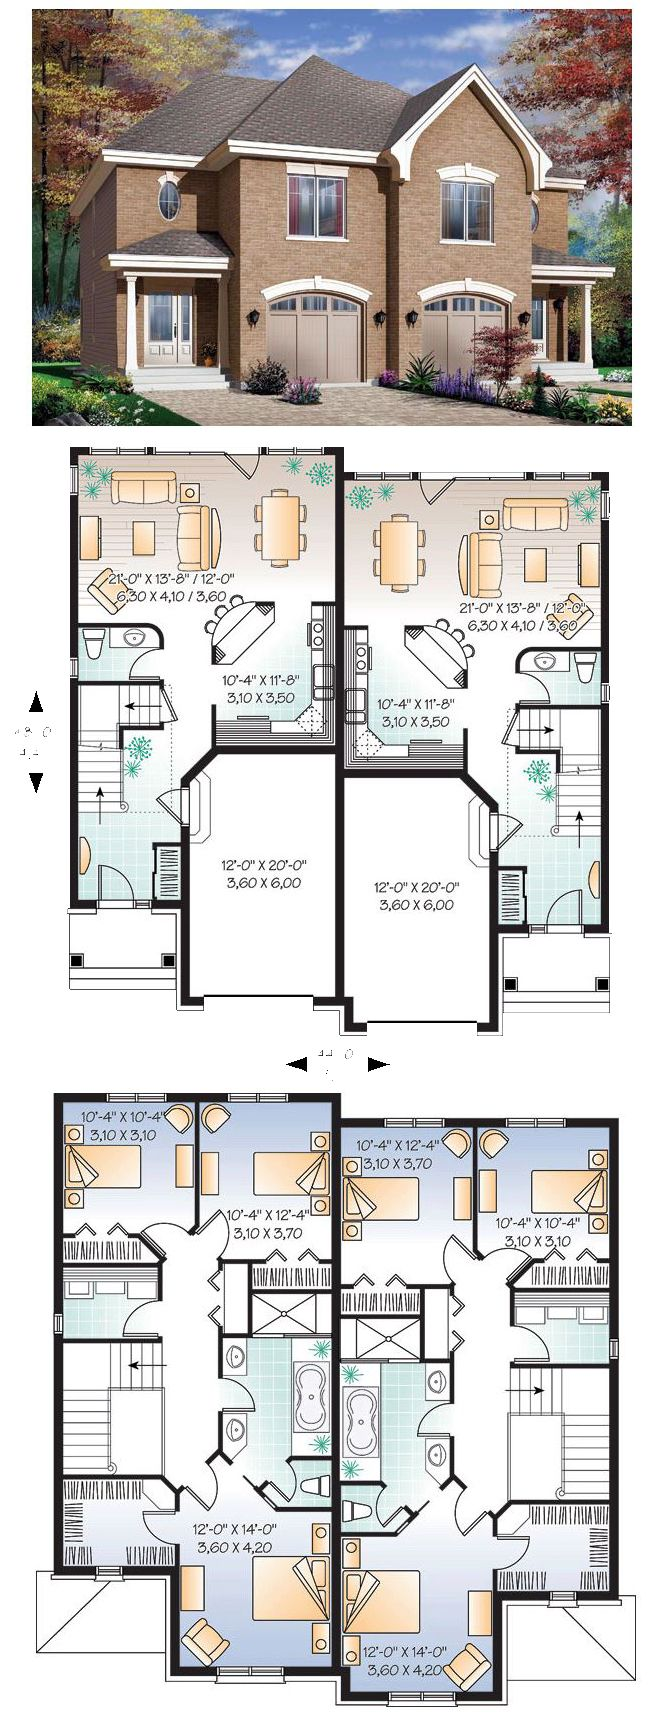 Small multi family house plans for Two family home plans